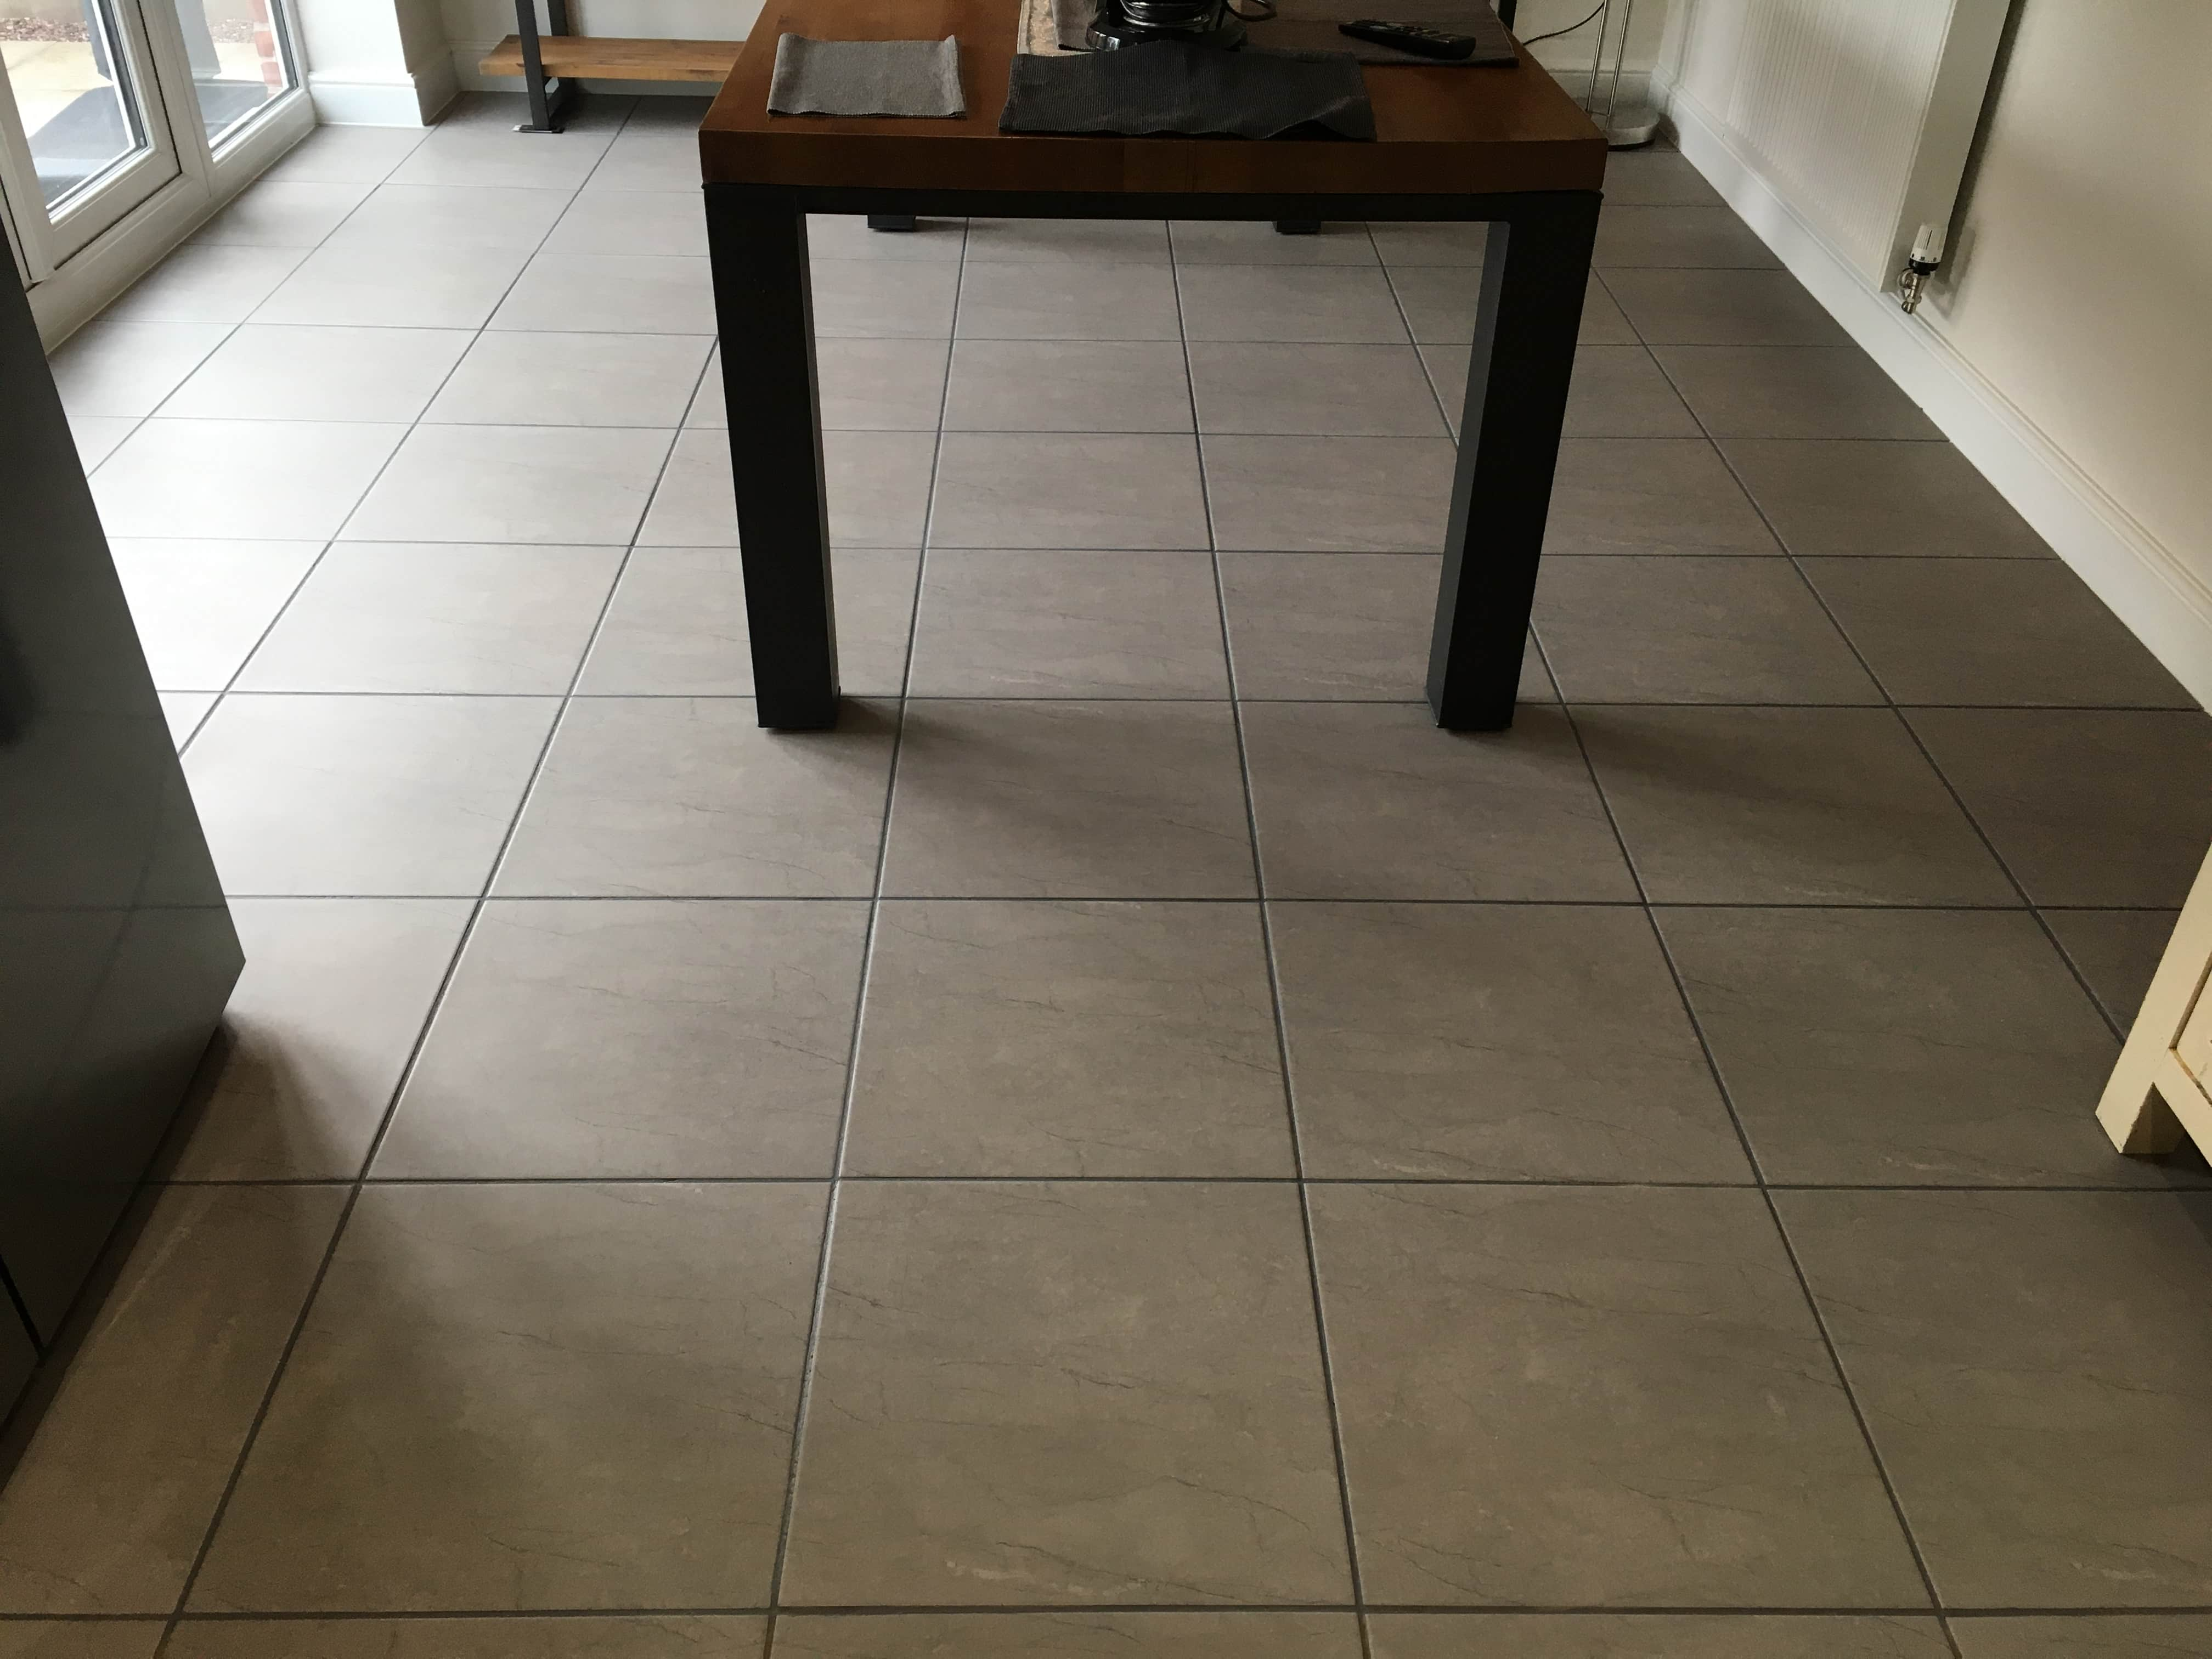 Ceramic Tiled Floor After Grout Colouring Shrewsbury